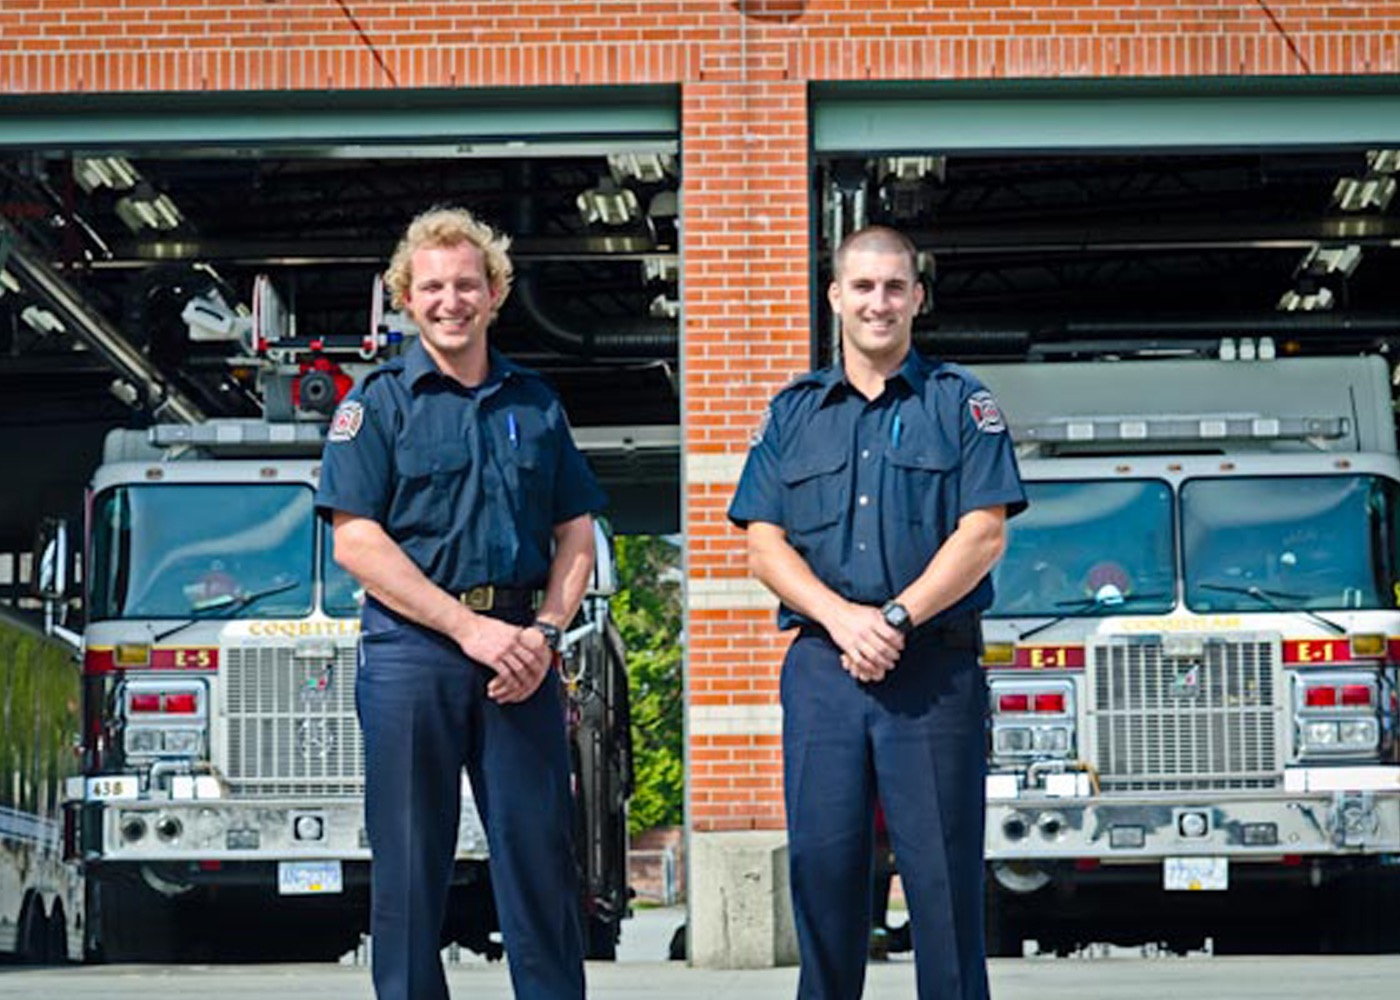 Coquitlam Fire Hall